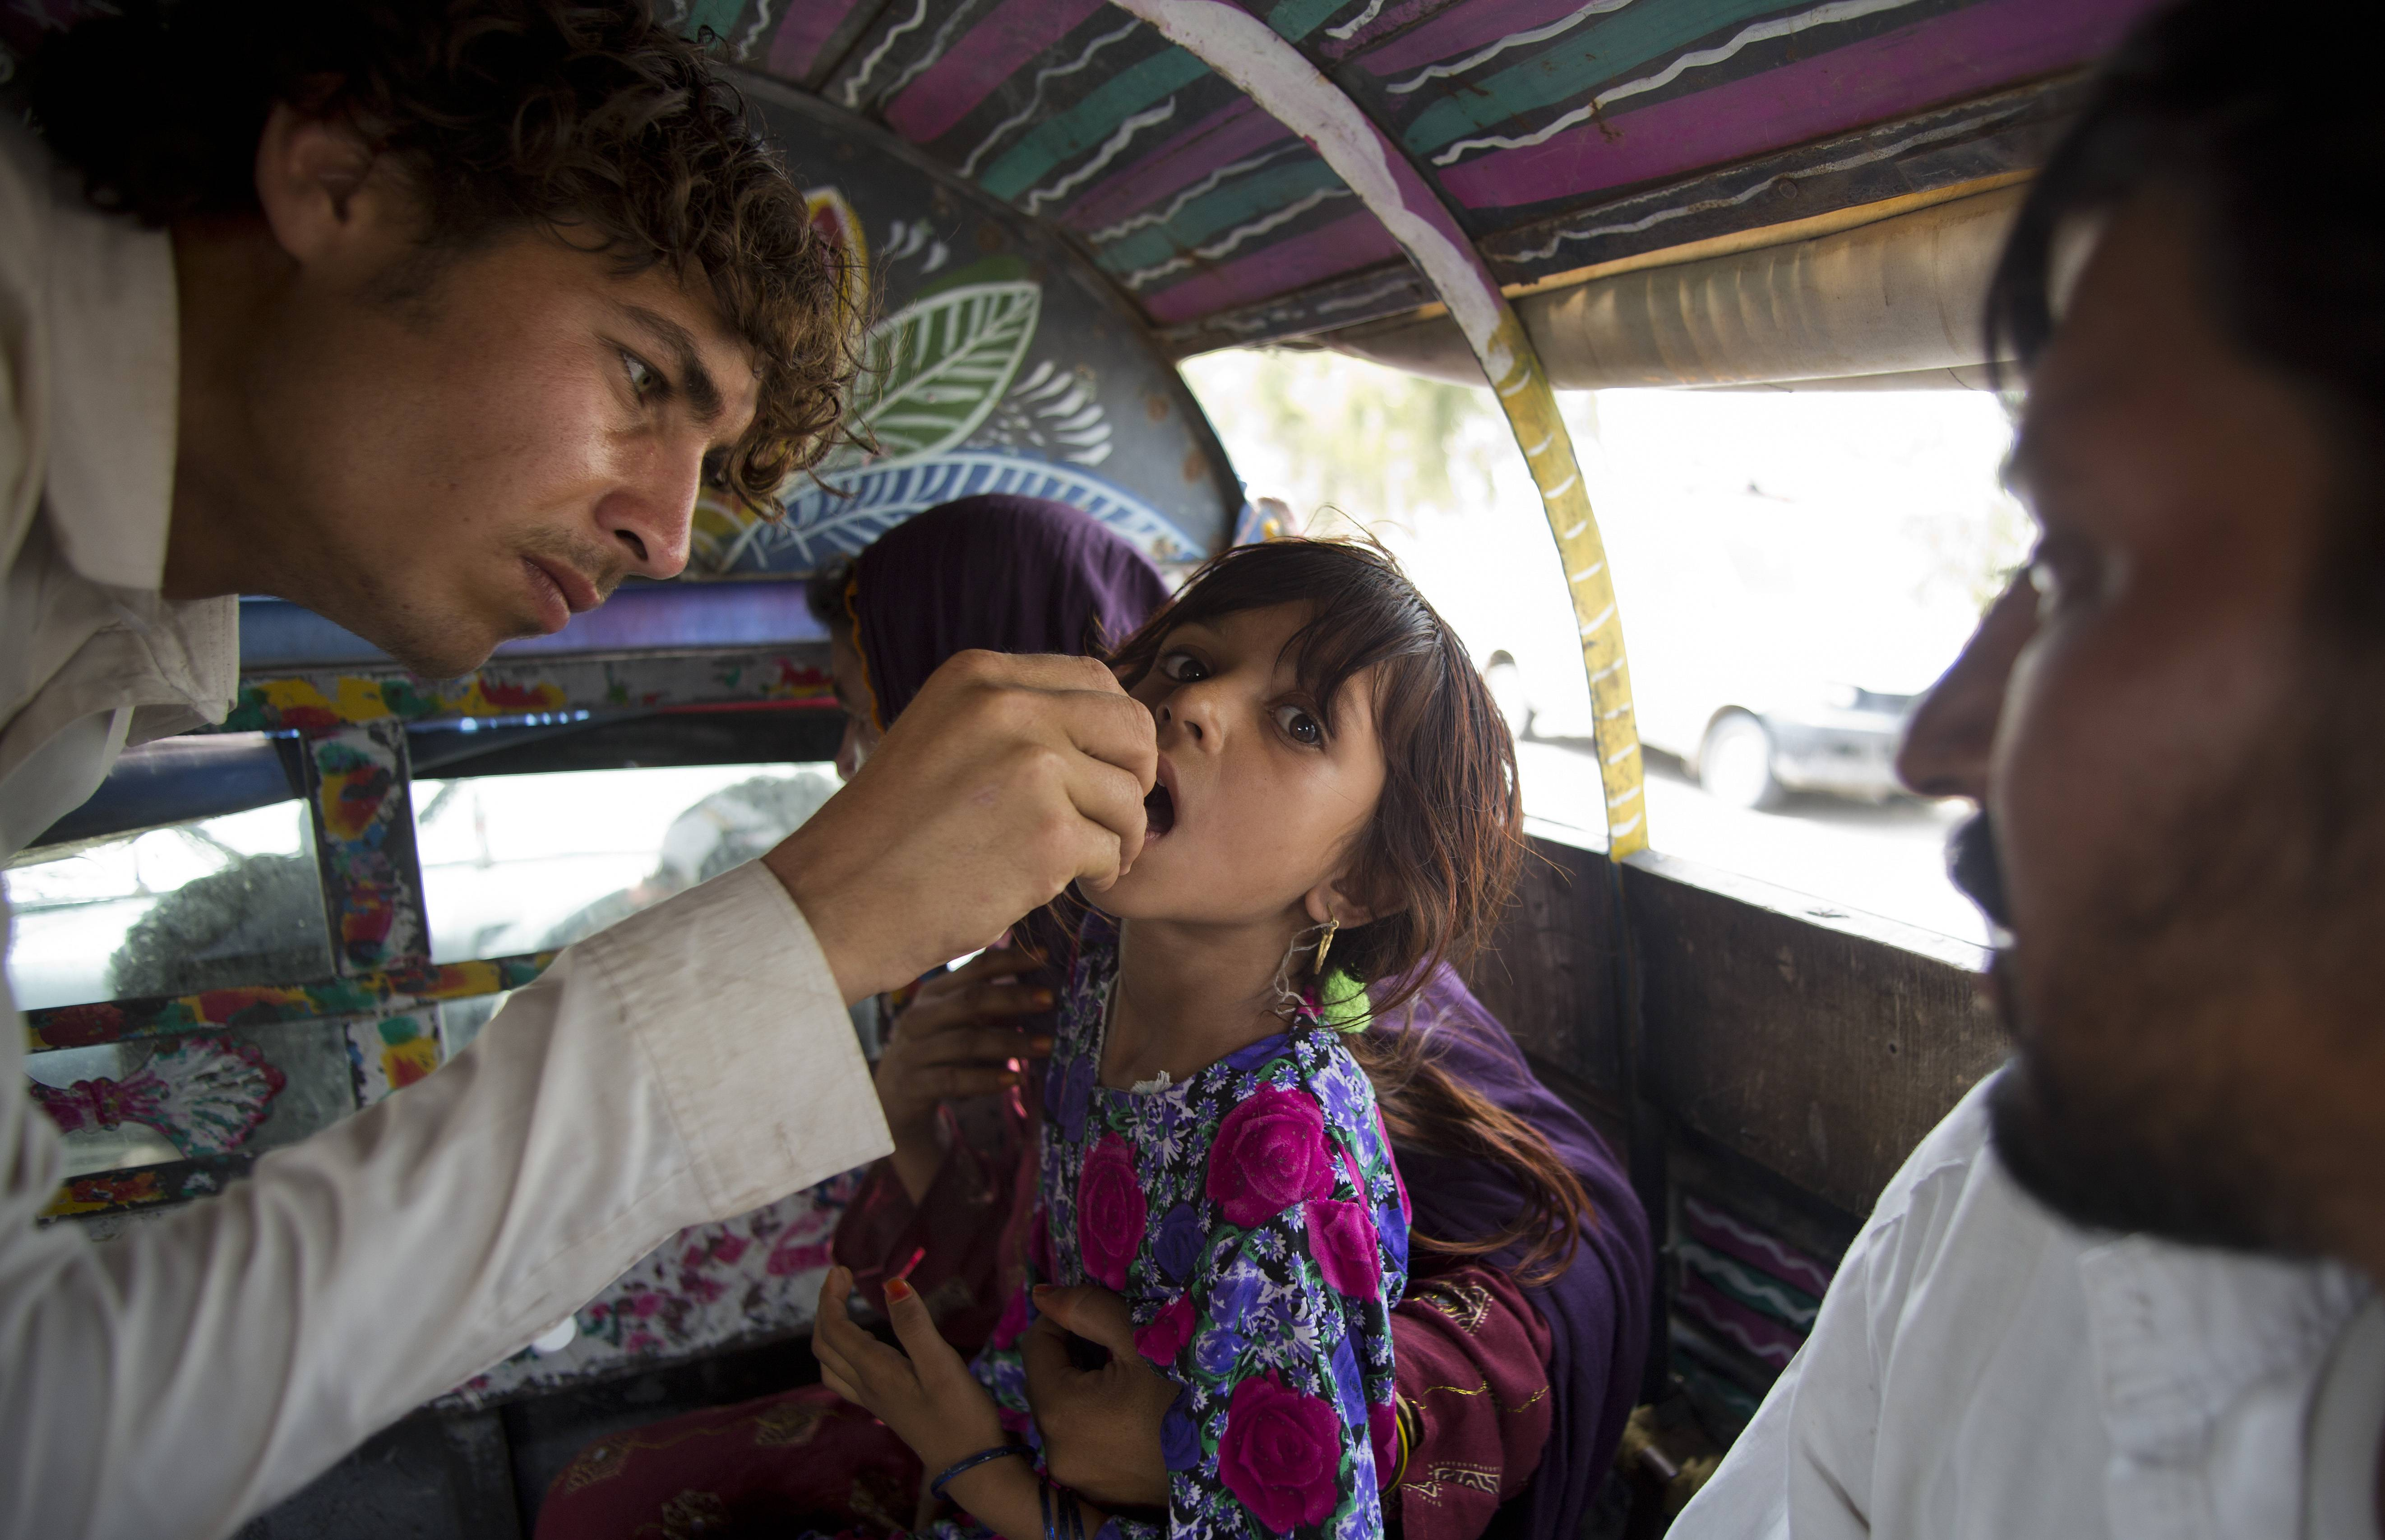 In this photo taken on Friday, June 27, a Pakistani volunteer gives polio vaccine to a displaced tribal girl in Bannu, Pakistan. The rugged Pakistani region of North Waziristan emerged as a hotbed of polio infections after Taliban militants in the isolated area banned immunizations. Now the Pakistani government's offensive against the militants has sent a half-million refugees fleeing the territory, creating both perfect conditions for the disease to spread and a golden opportunity to immunize many thousands of people.